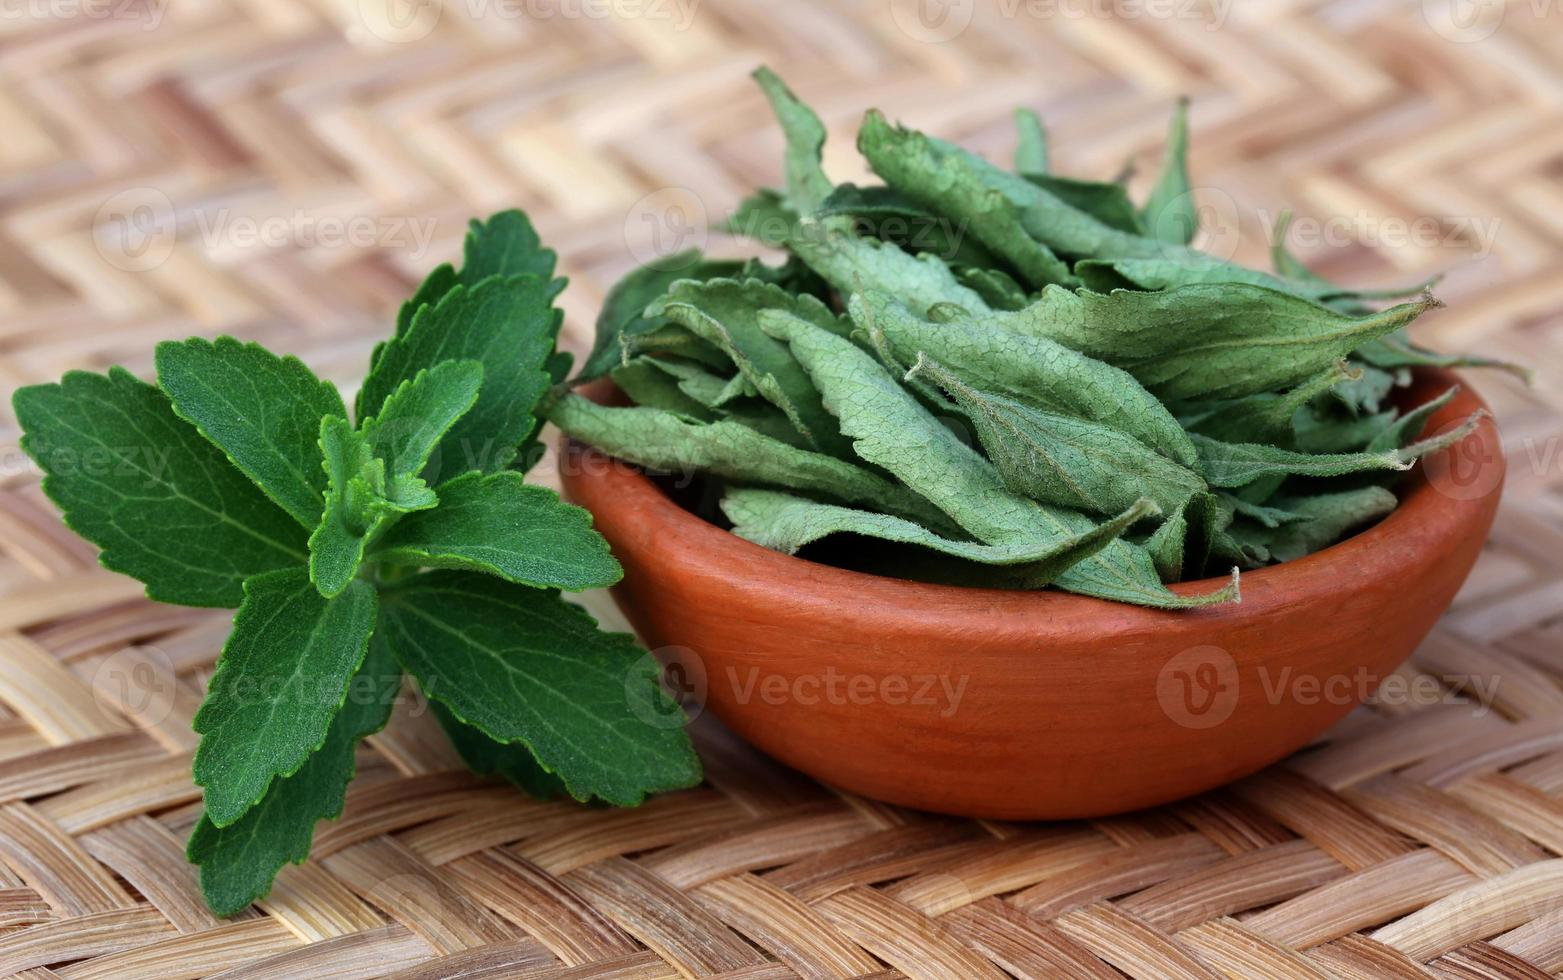 Green and dired Stevia leaves photo